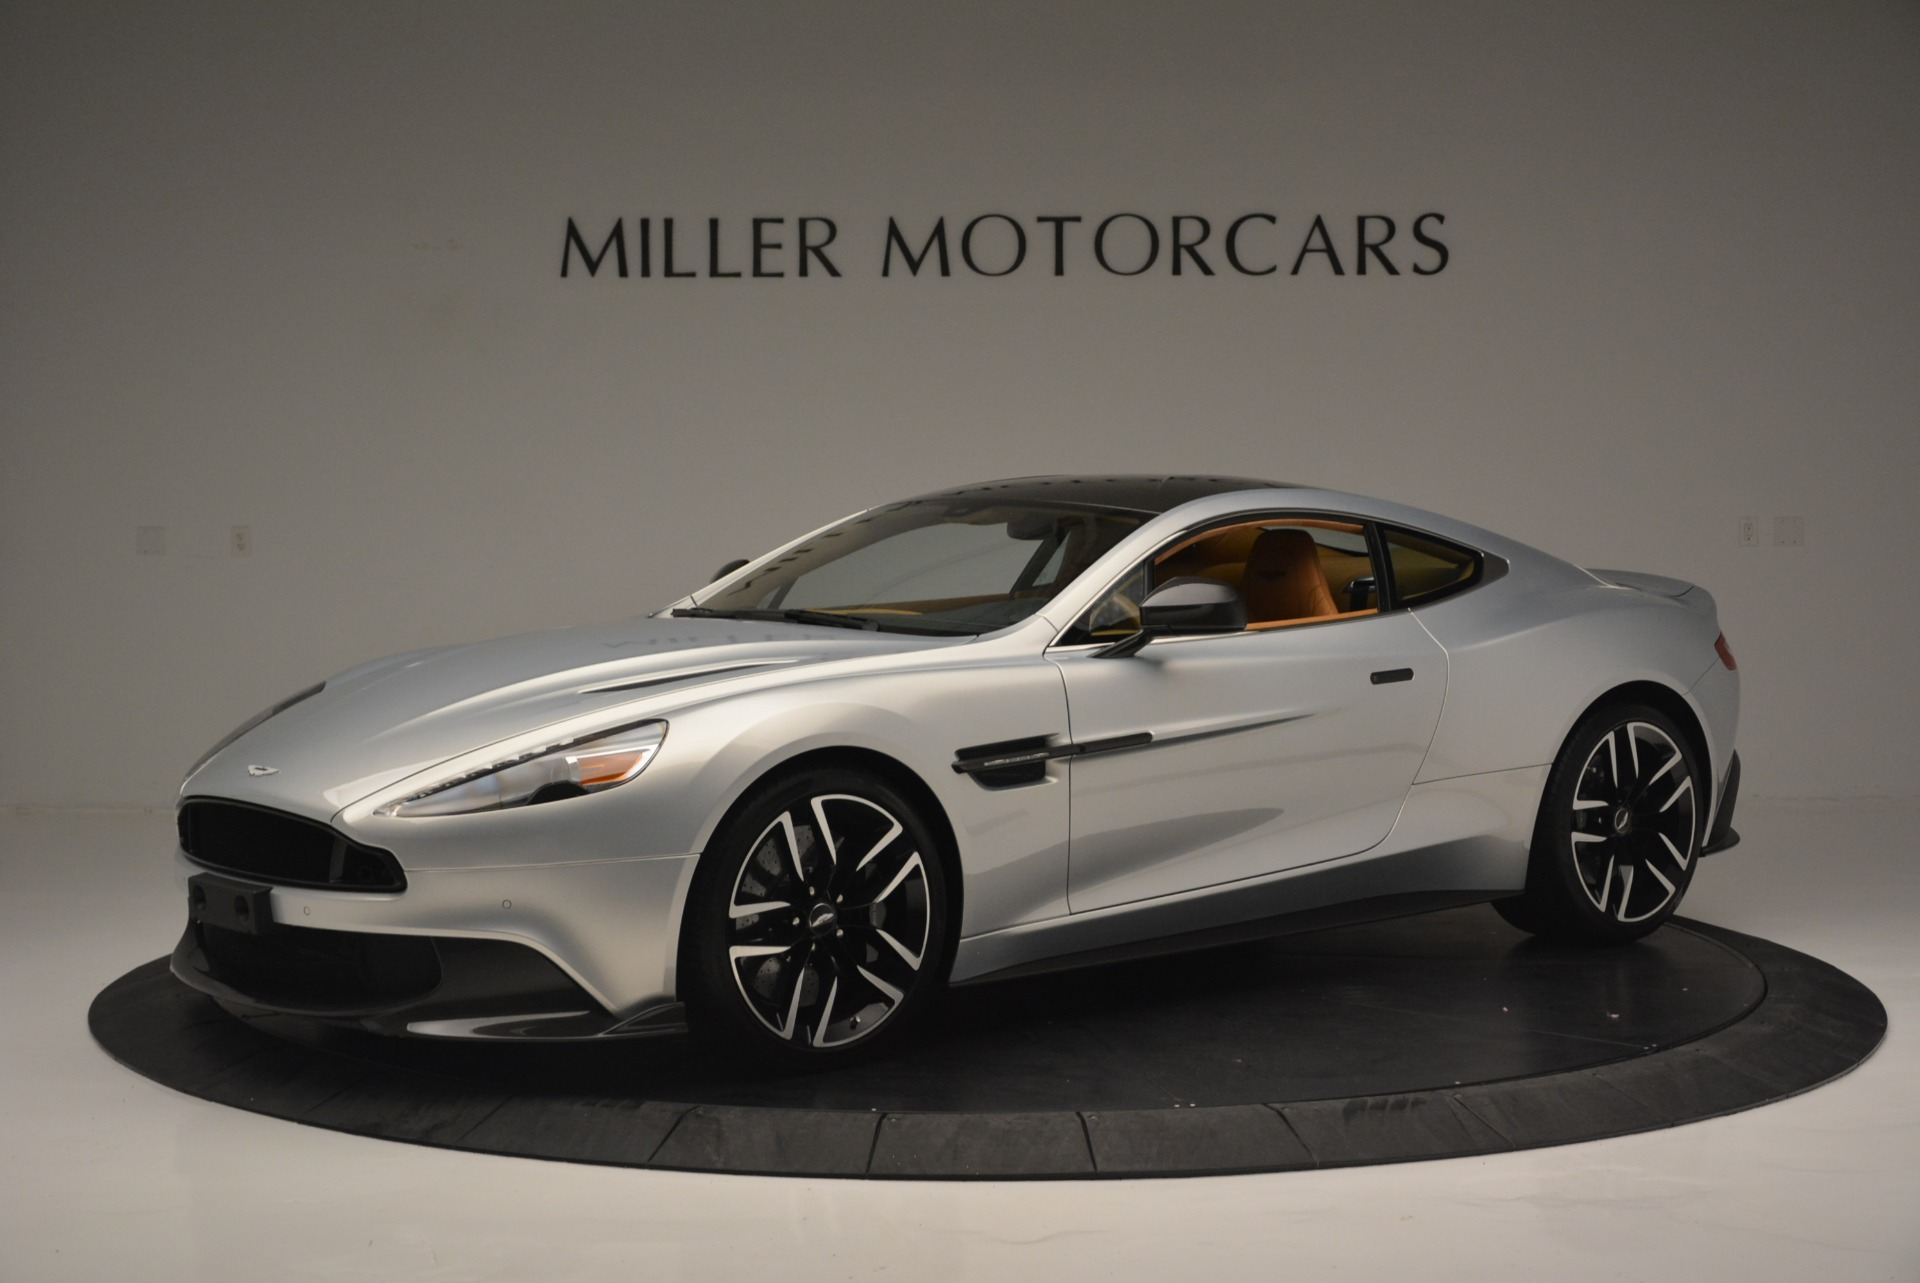 Used 2018 Aston Martin Vanquish S Coupe For Sale In Greenwich, CT. Alfa Romeo of Greenwich, 7397 2421_main